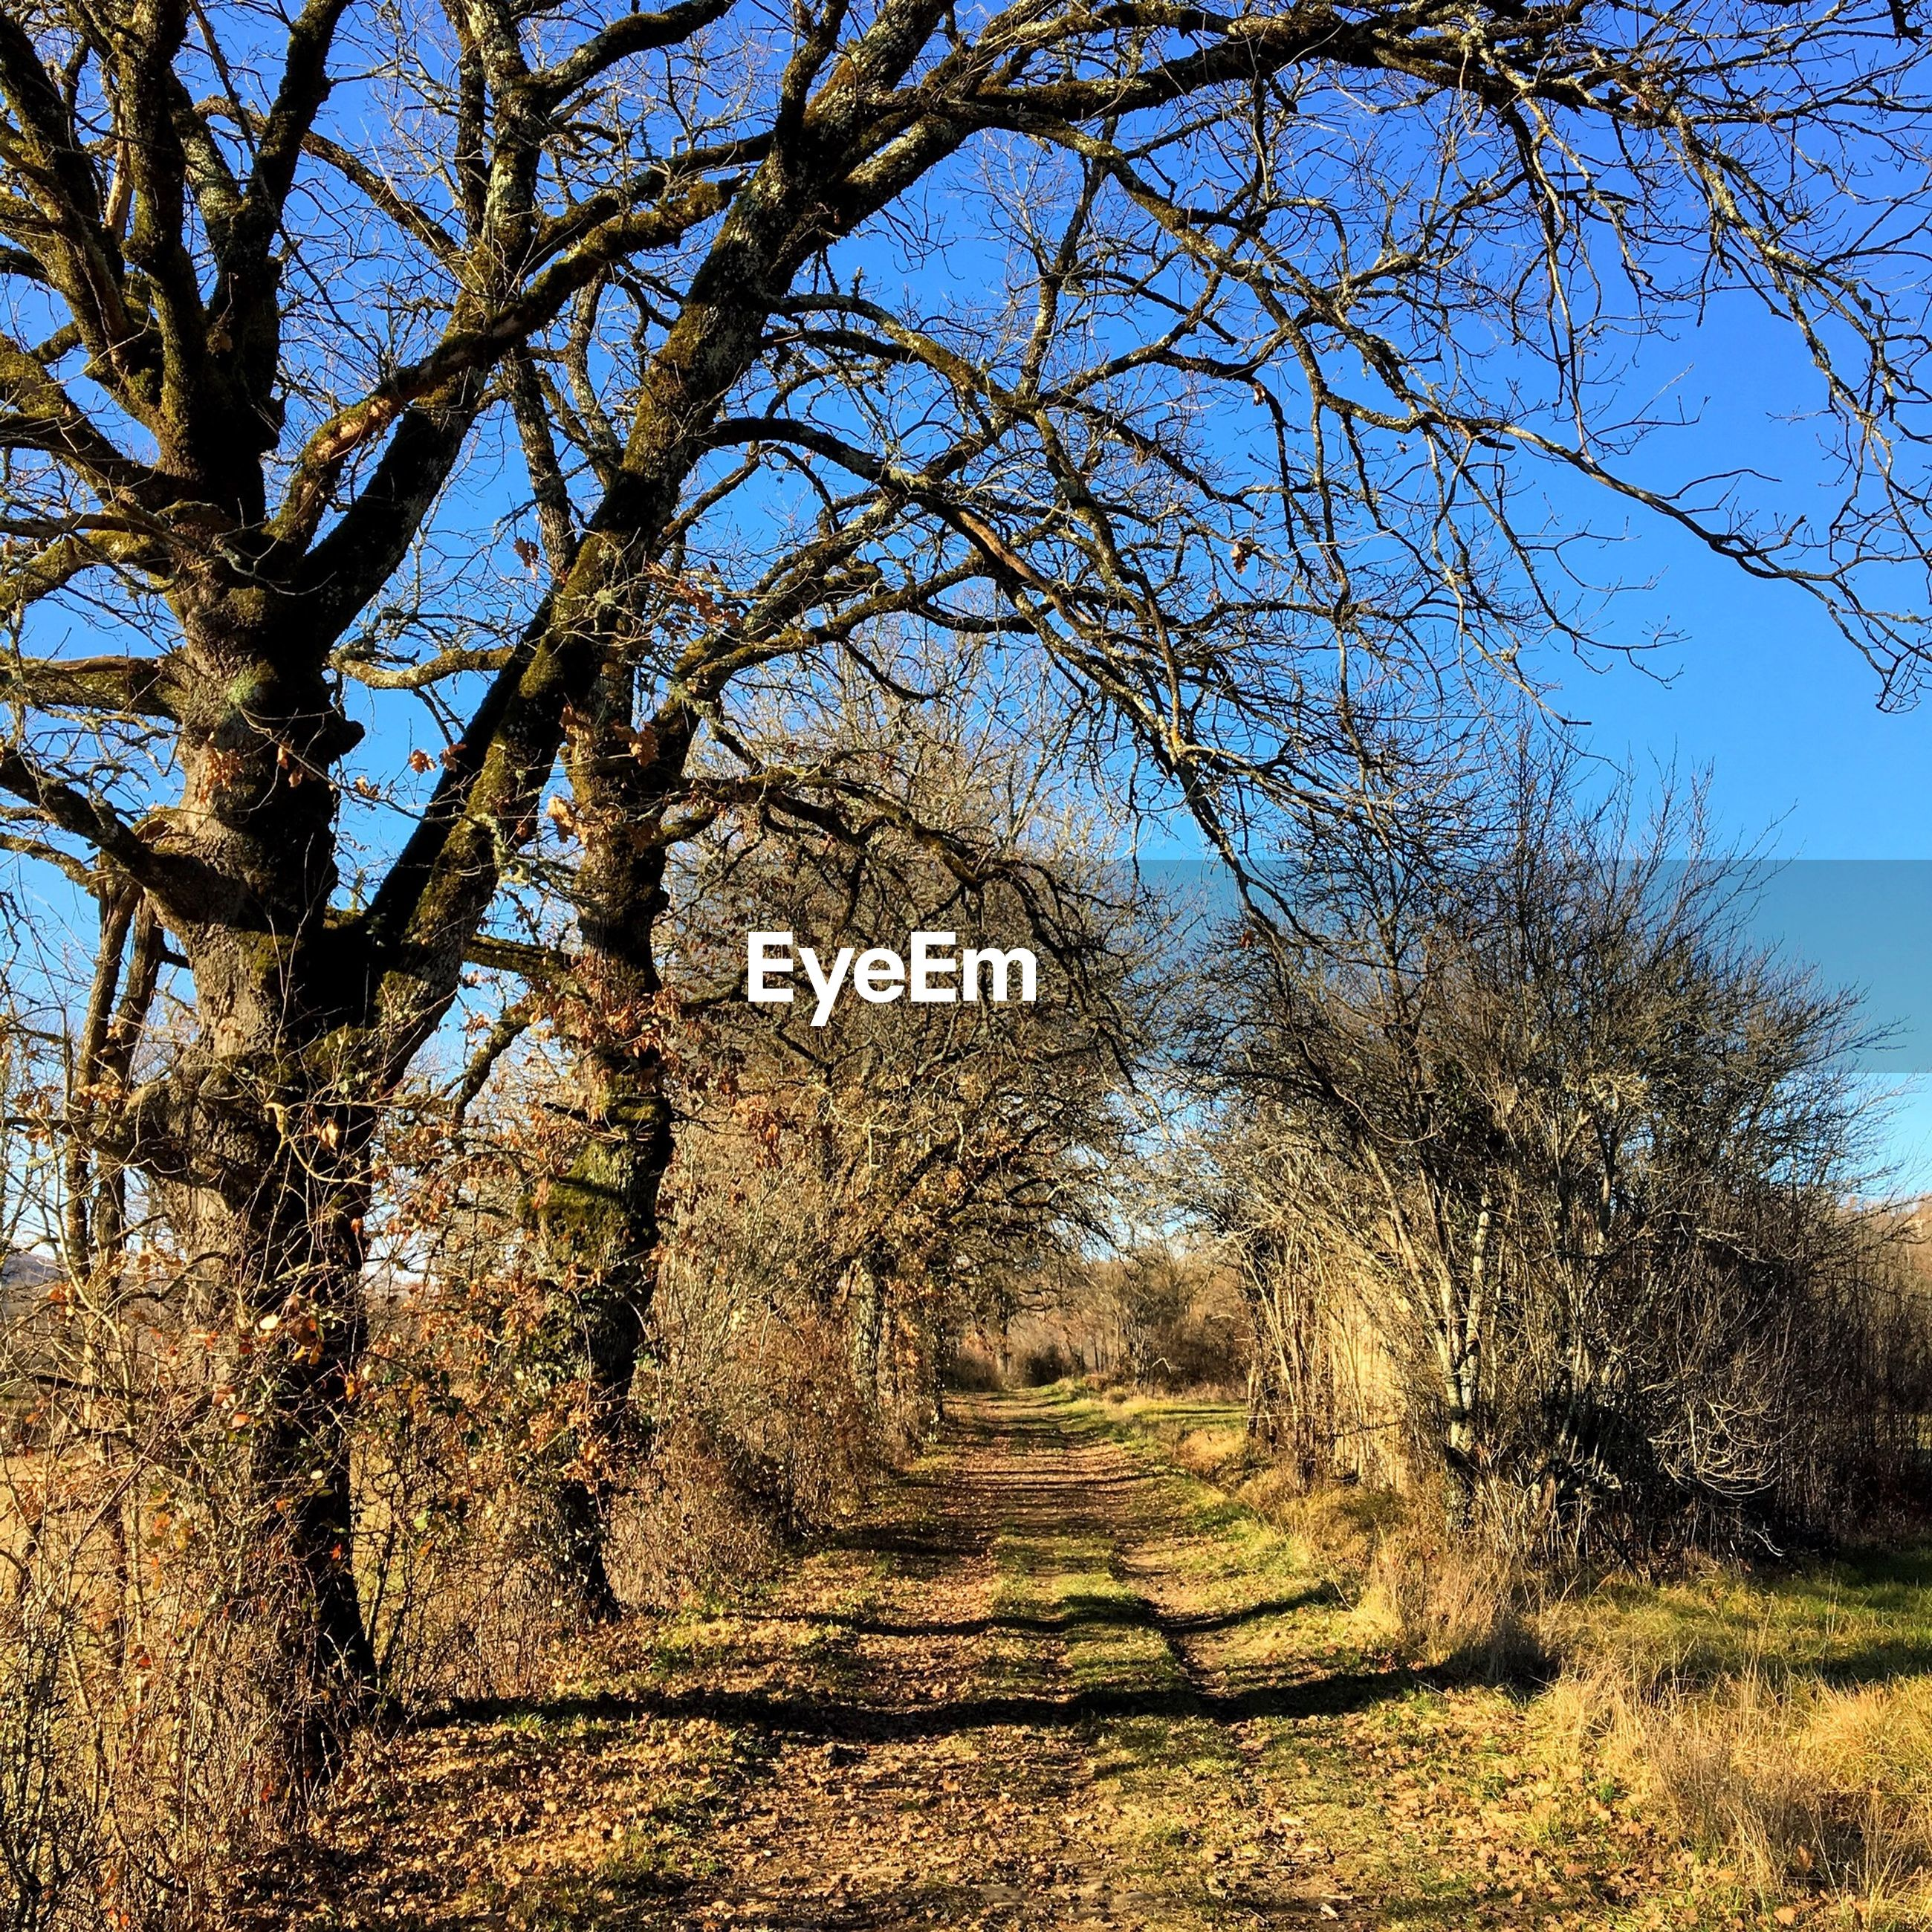 tree, the way forward, tranquility, growth, nature, branch, sky, tranquil scene, diminishing perspective, clear sky, landscape, day, field, beauty in nature, sunlight, bare tree, scenics, outdoors, vanishing point, dirt road